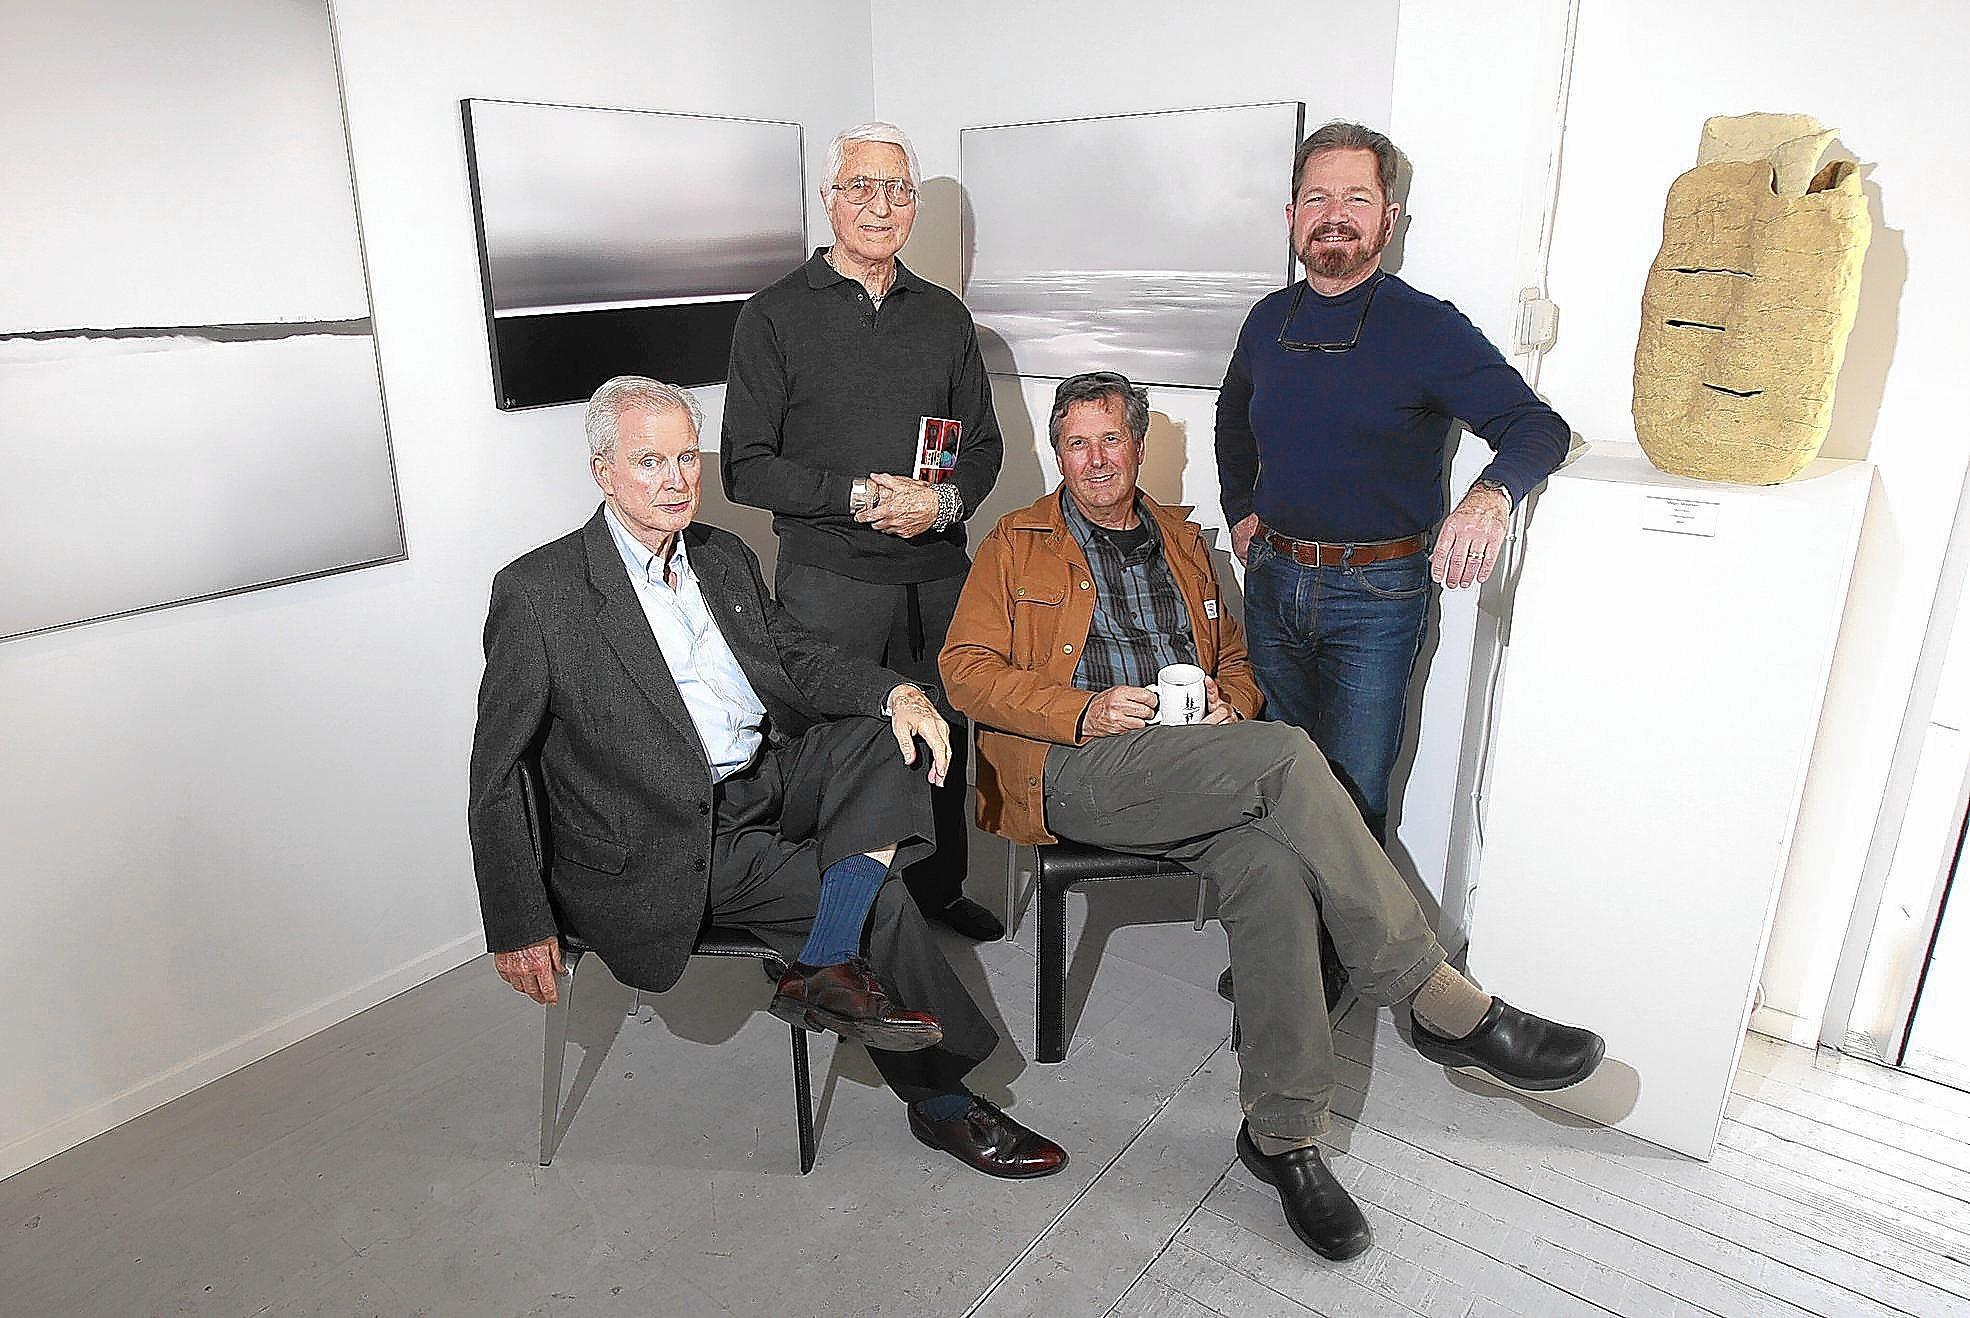 Sculptor Paul Woodward, photographers Tom Lamb and Hans Rindfleisch and gallery owner Ludo Leideritz, left to right, present the fourth installment of the Artist Spotlight series from March 10 to April 6 at the Forest and Ocean Gallery.